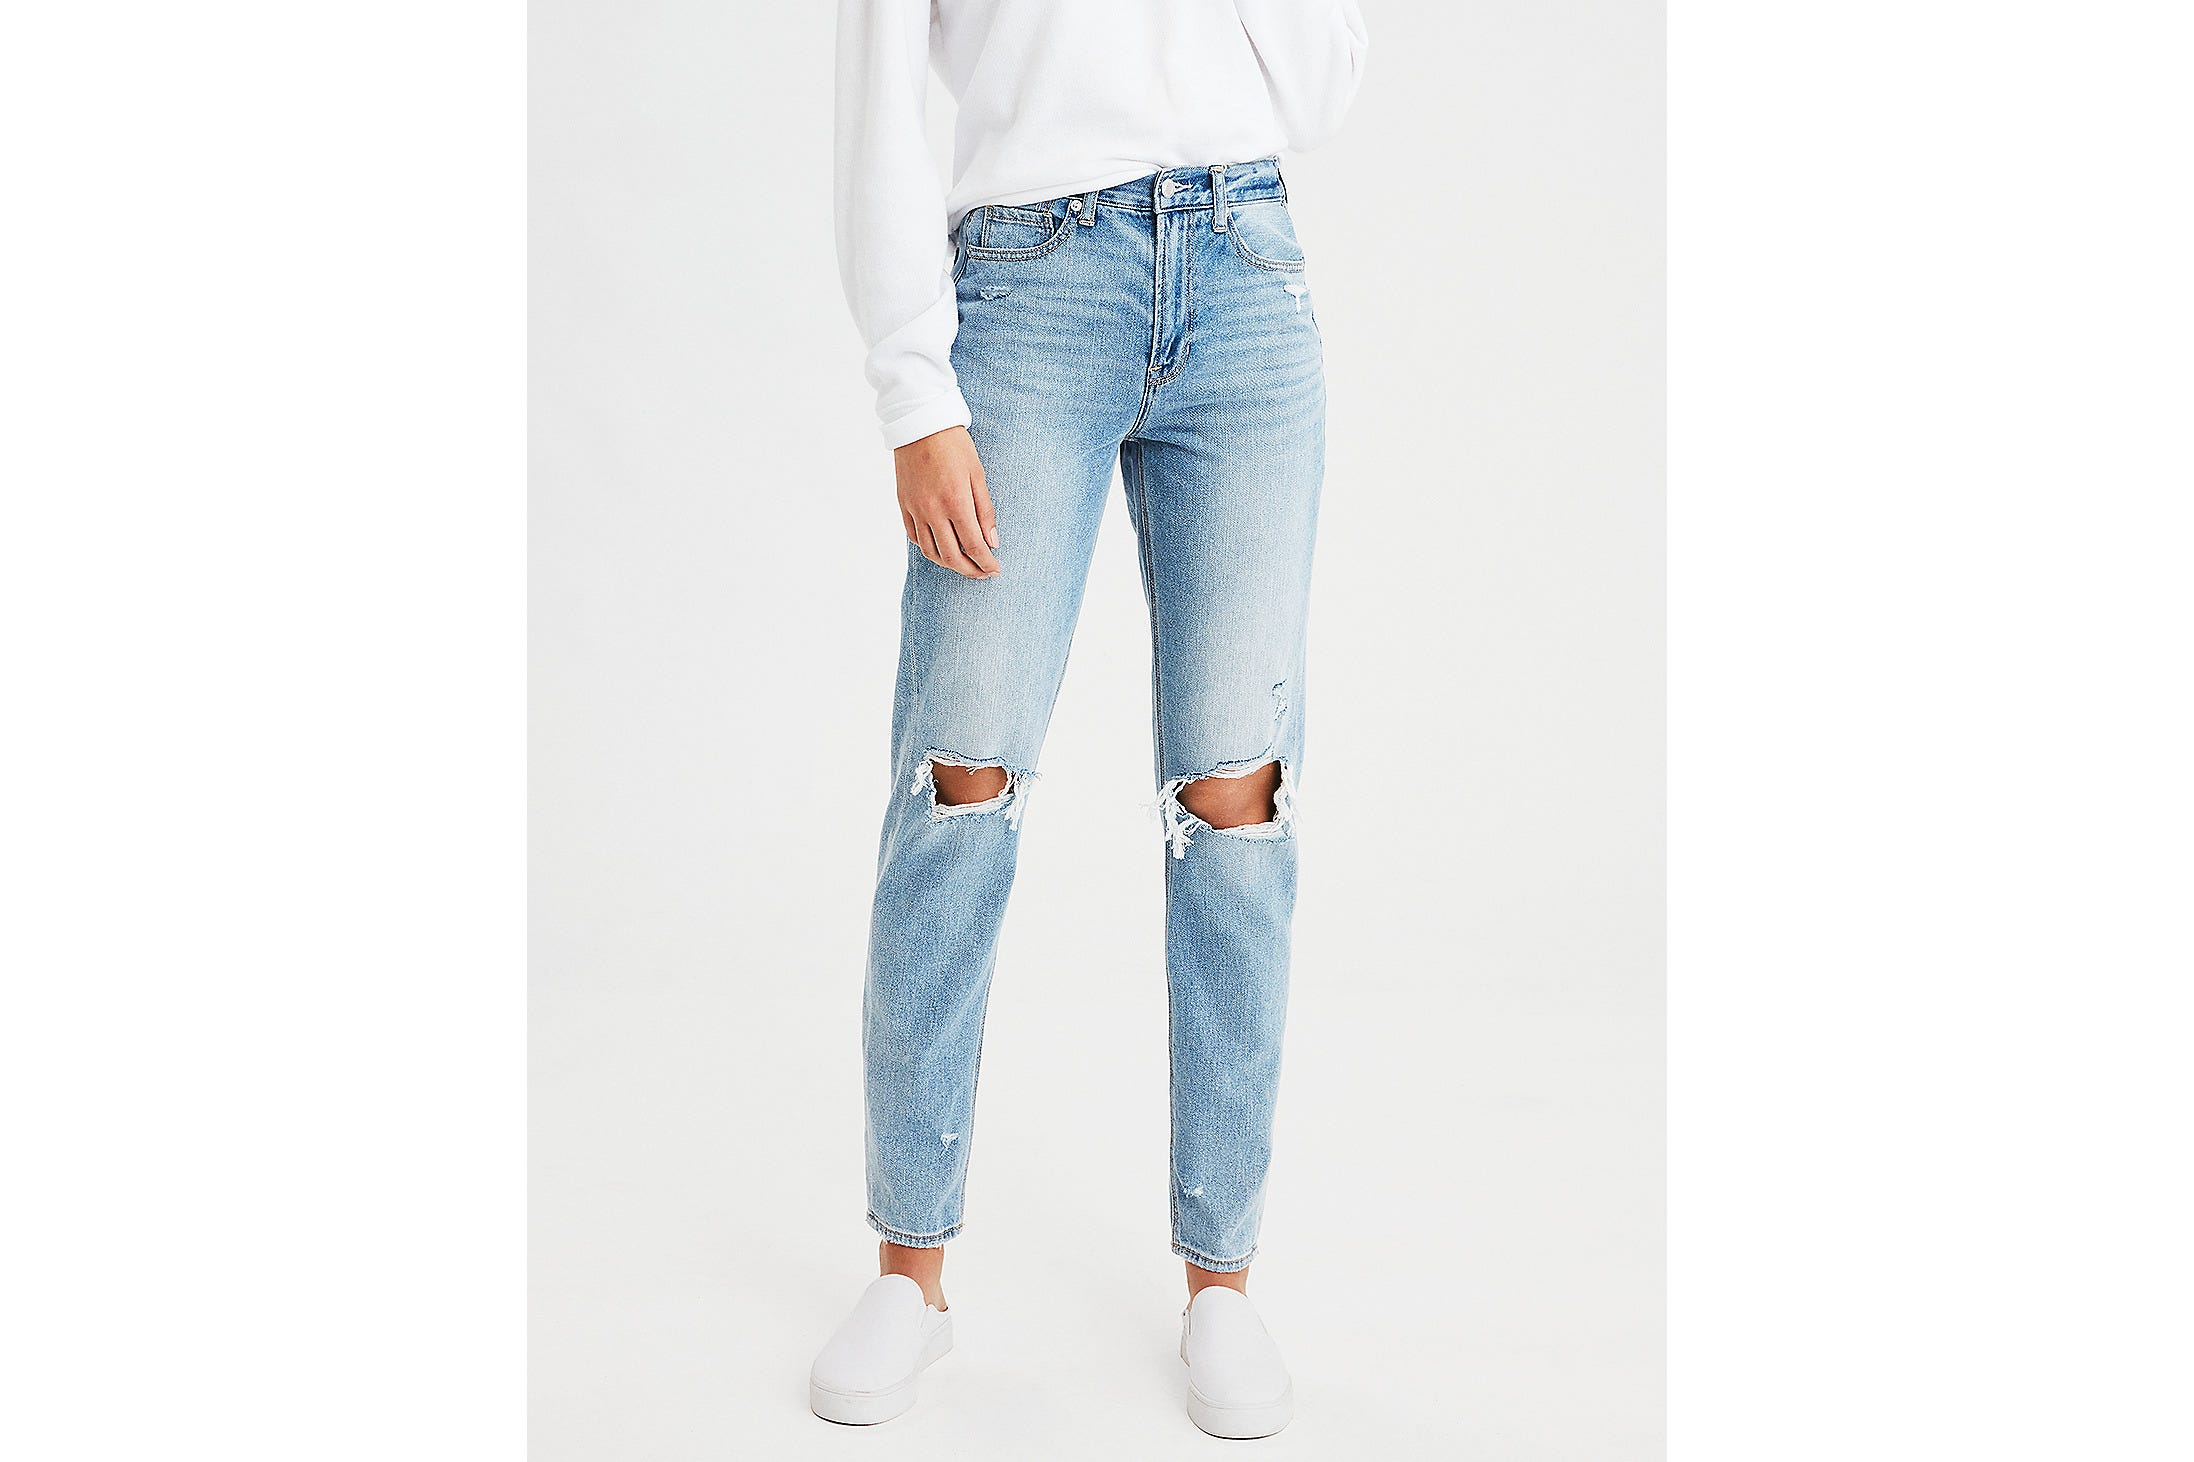 b266a6a5a30 High-Waisted Mom Jeans For Women At Any Price Point